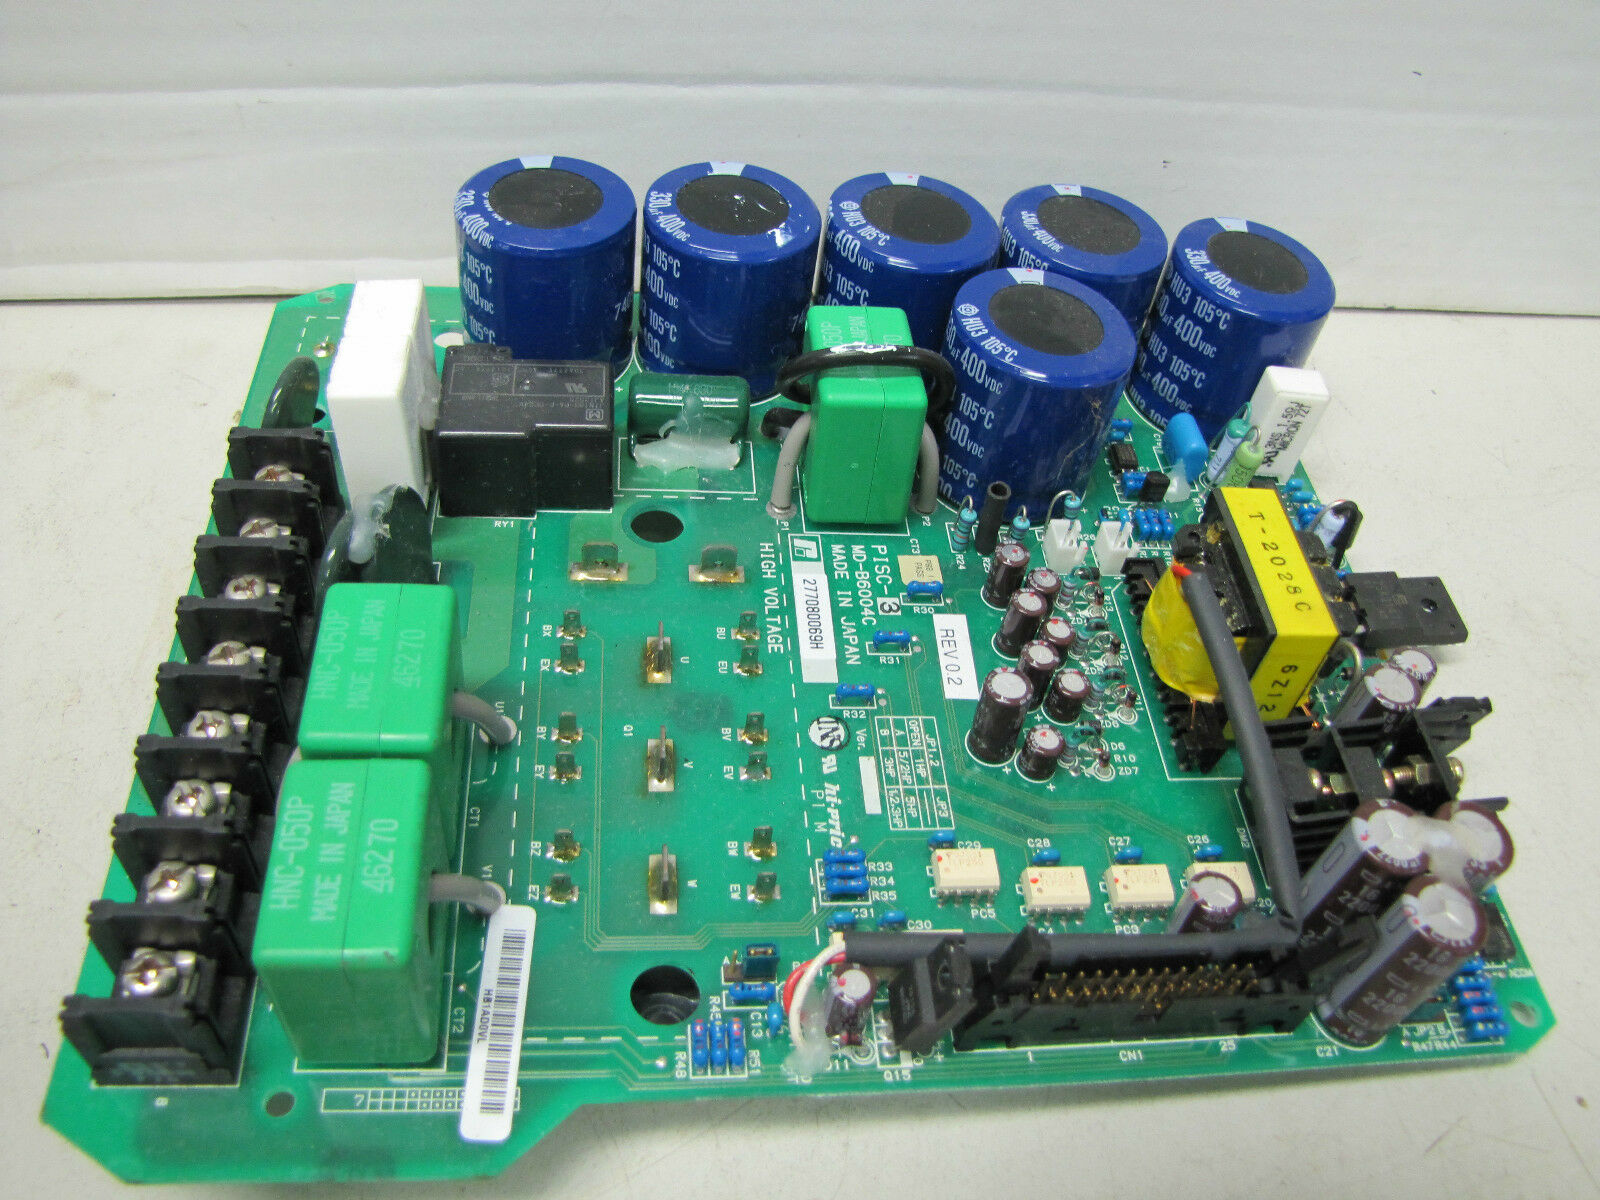 RELIANCE ELECTRIC CIRCUIT CONTROL BOARD HI-PRIC PISC-3 PISC3 MD-B6004C MDB6004C